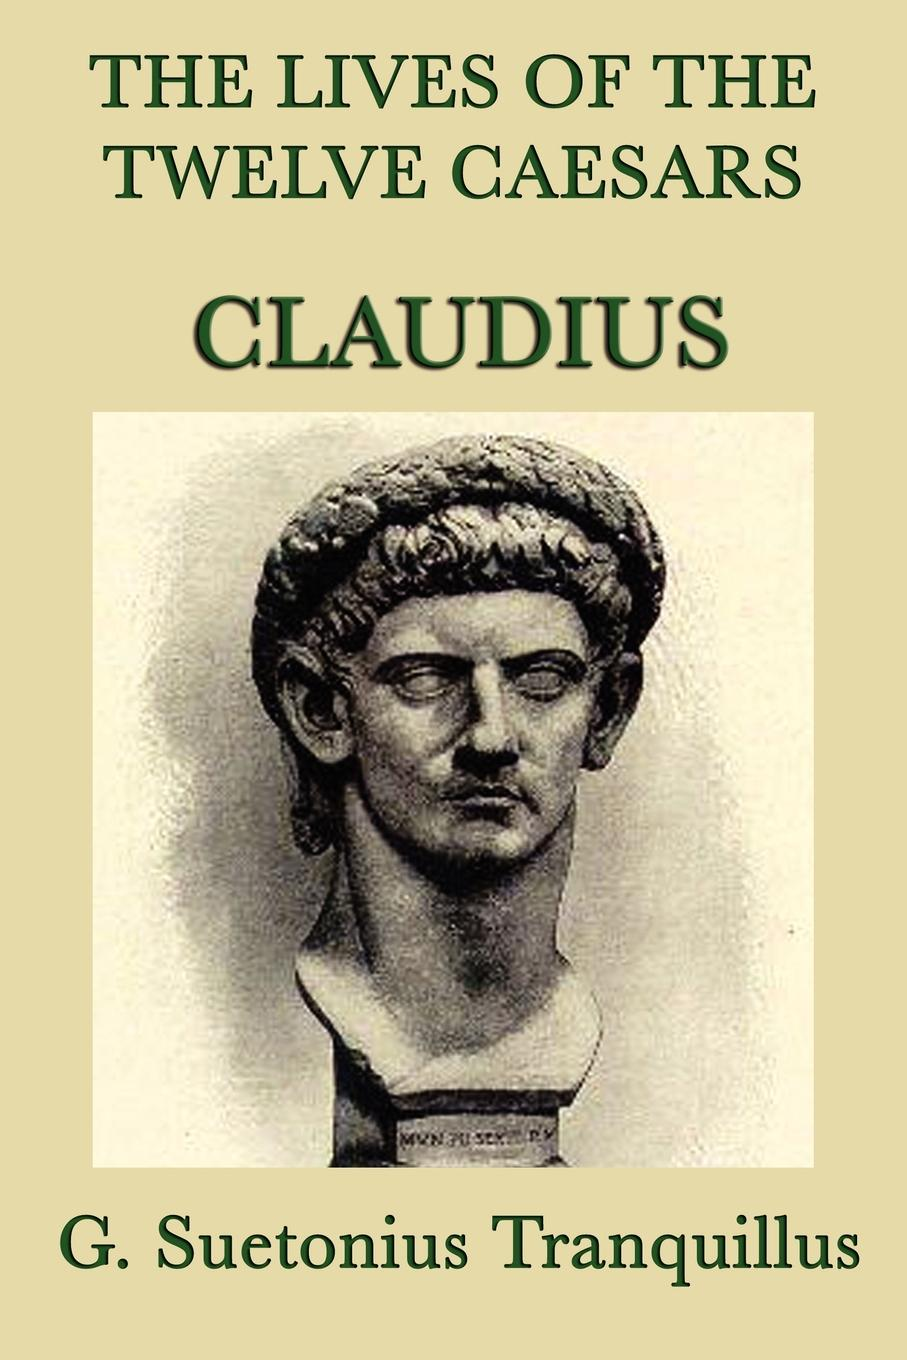 The Lives of the Twelve Caesars: Claudius